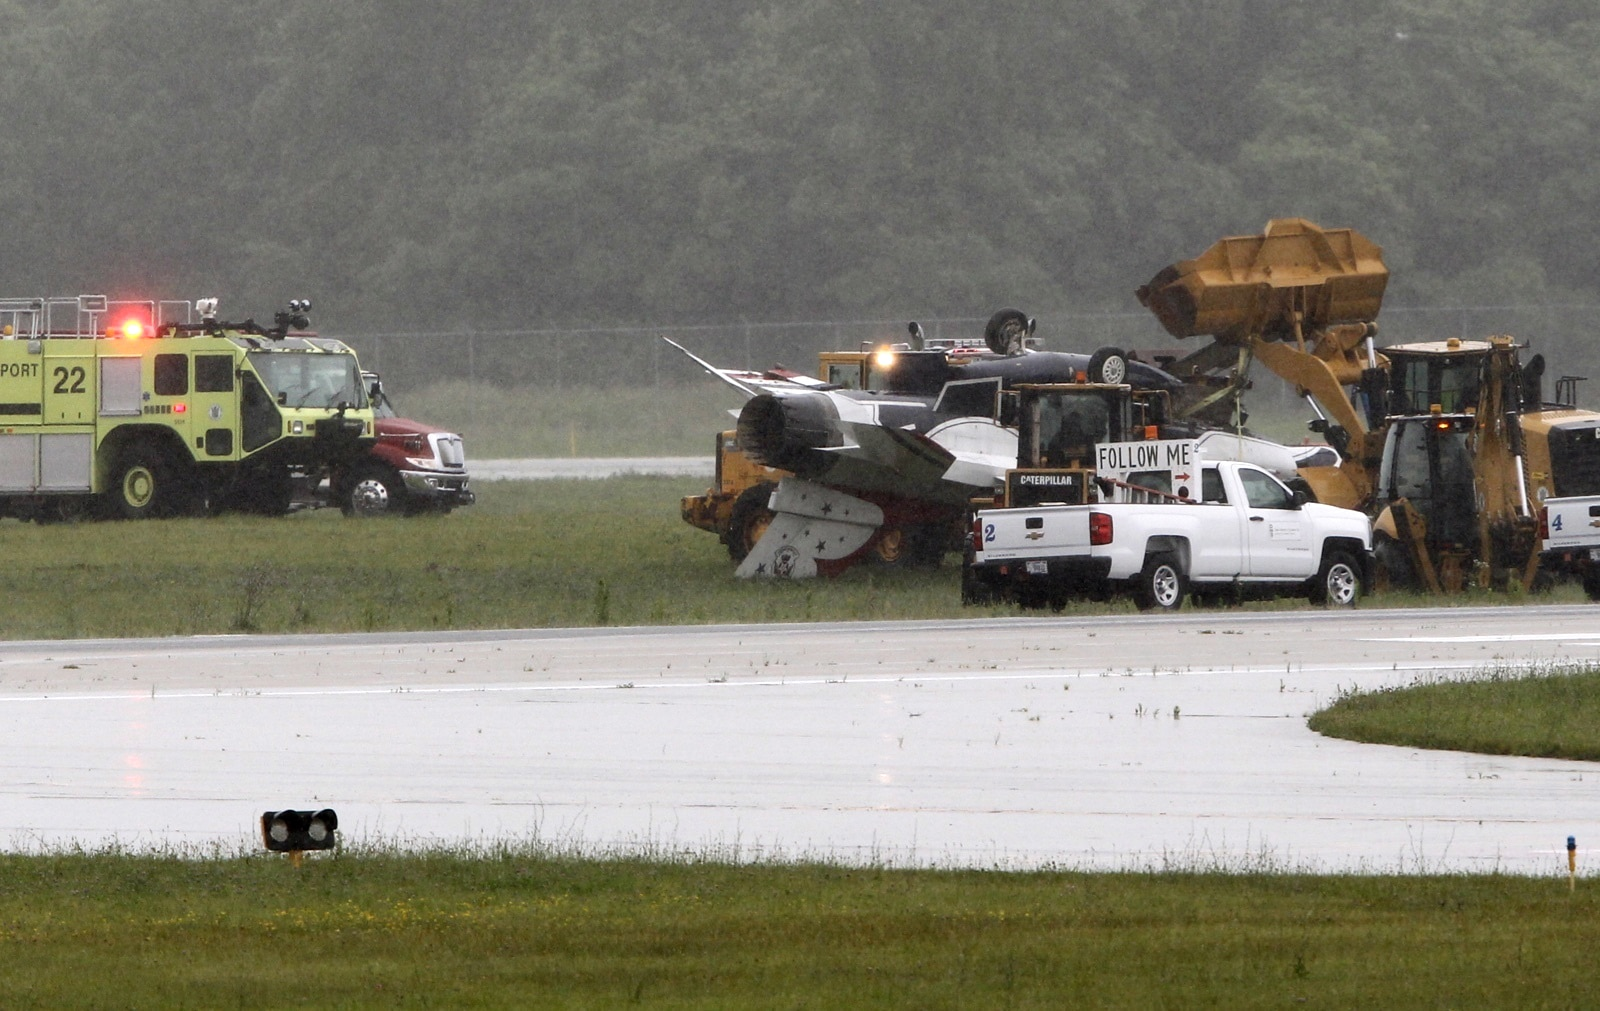 Thunderbirds jet landed too fast, skidded off wet runway in June crash